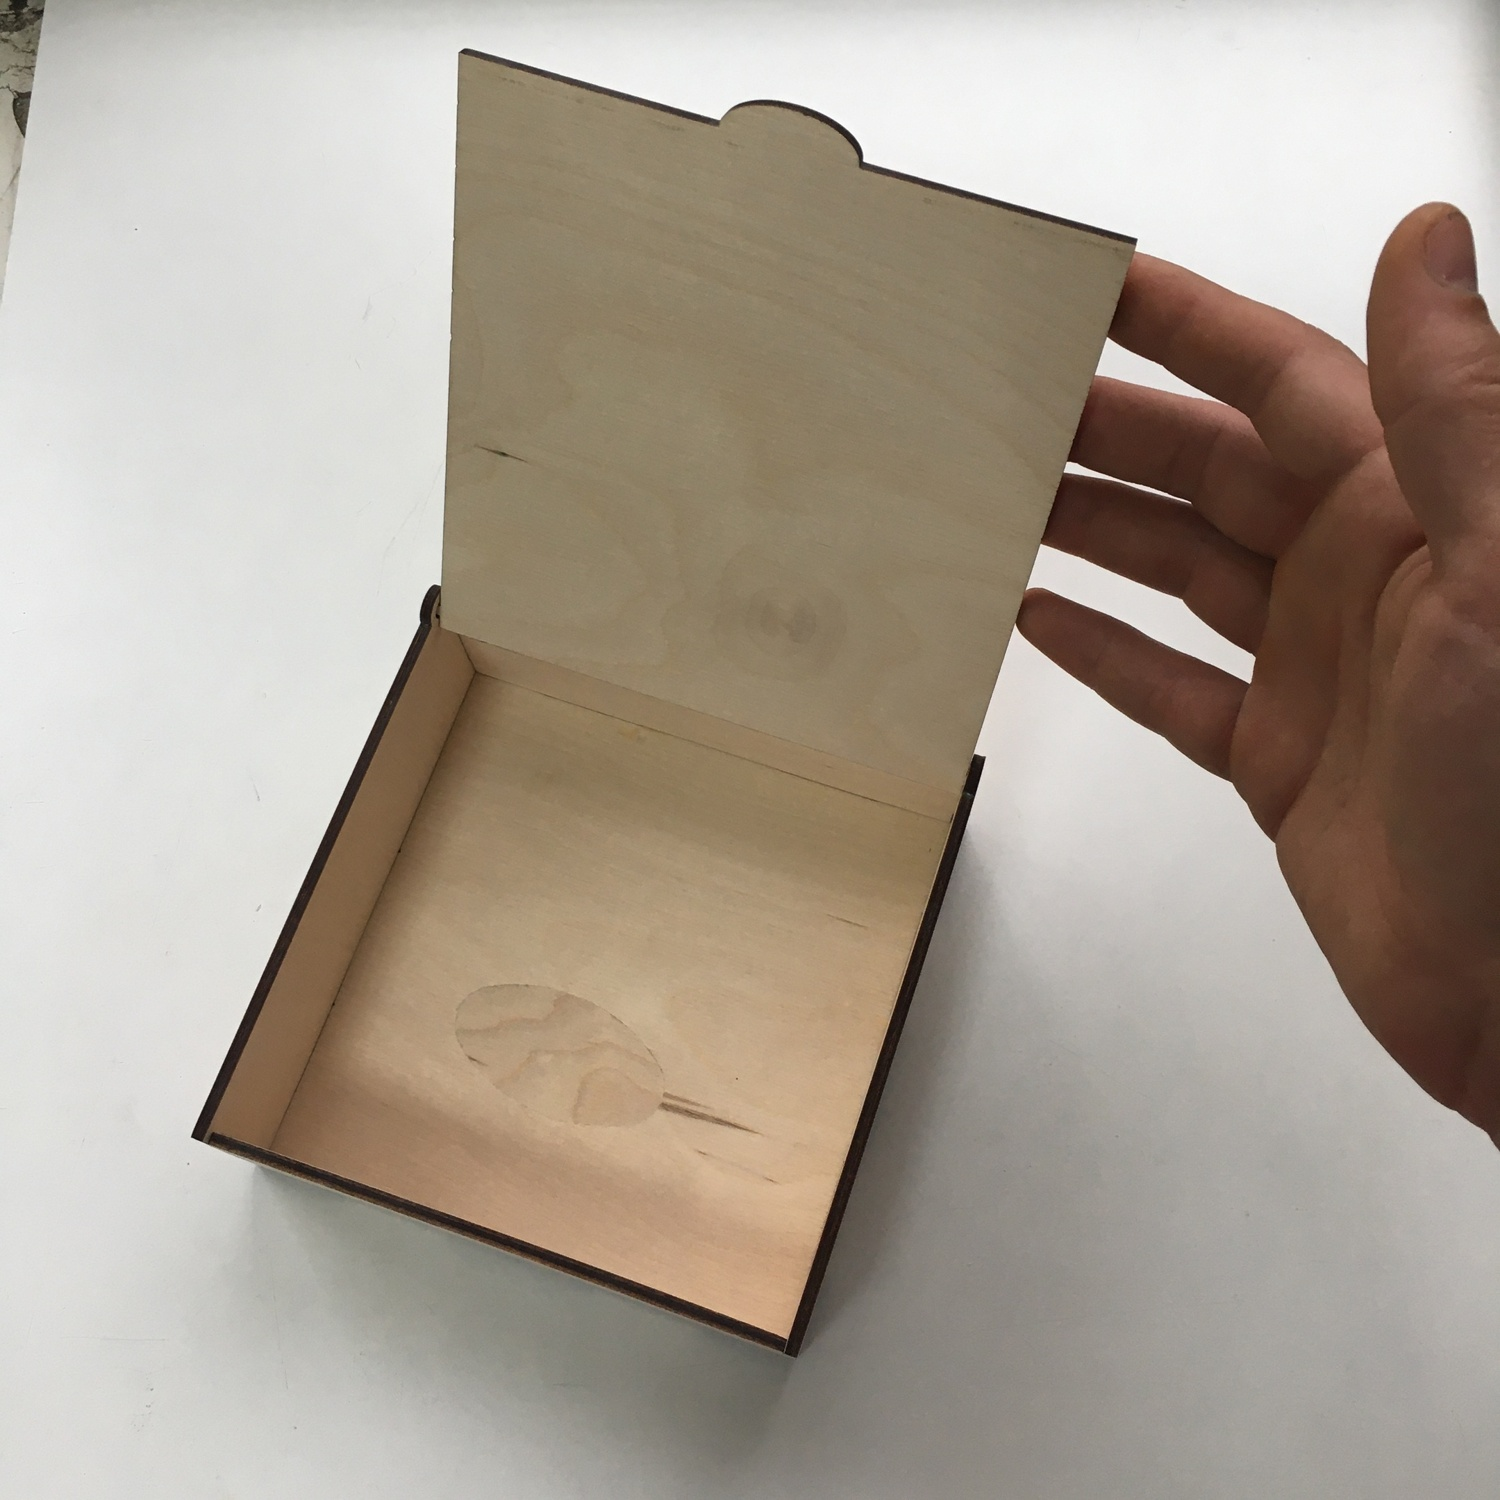 Laser Cut Wooden Engraved Box 15x15x5cm Free Vector